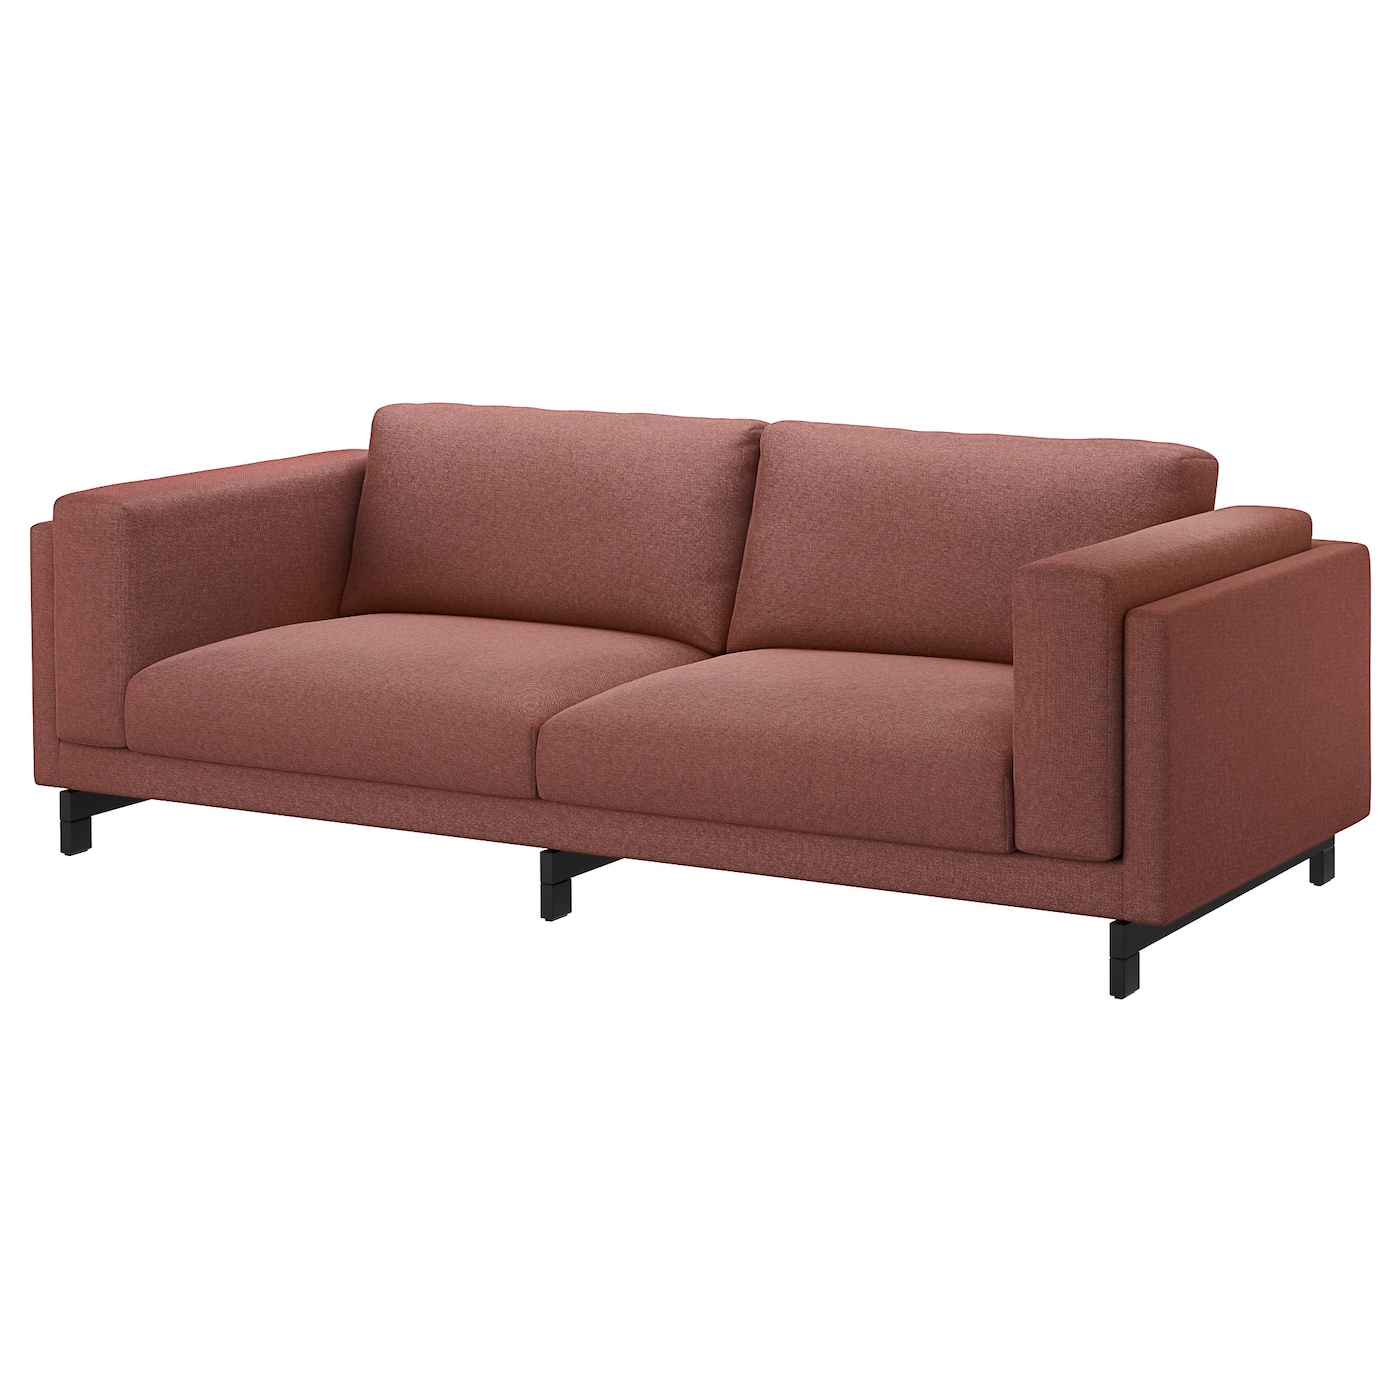 Nockeby three seat sofa tallmyra rust wood ikea for Sofa jugendzimmer ikea